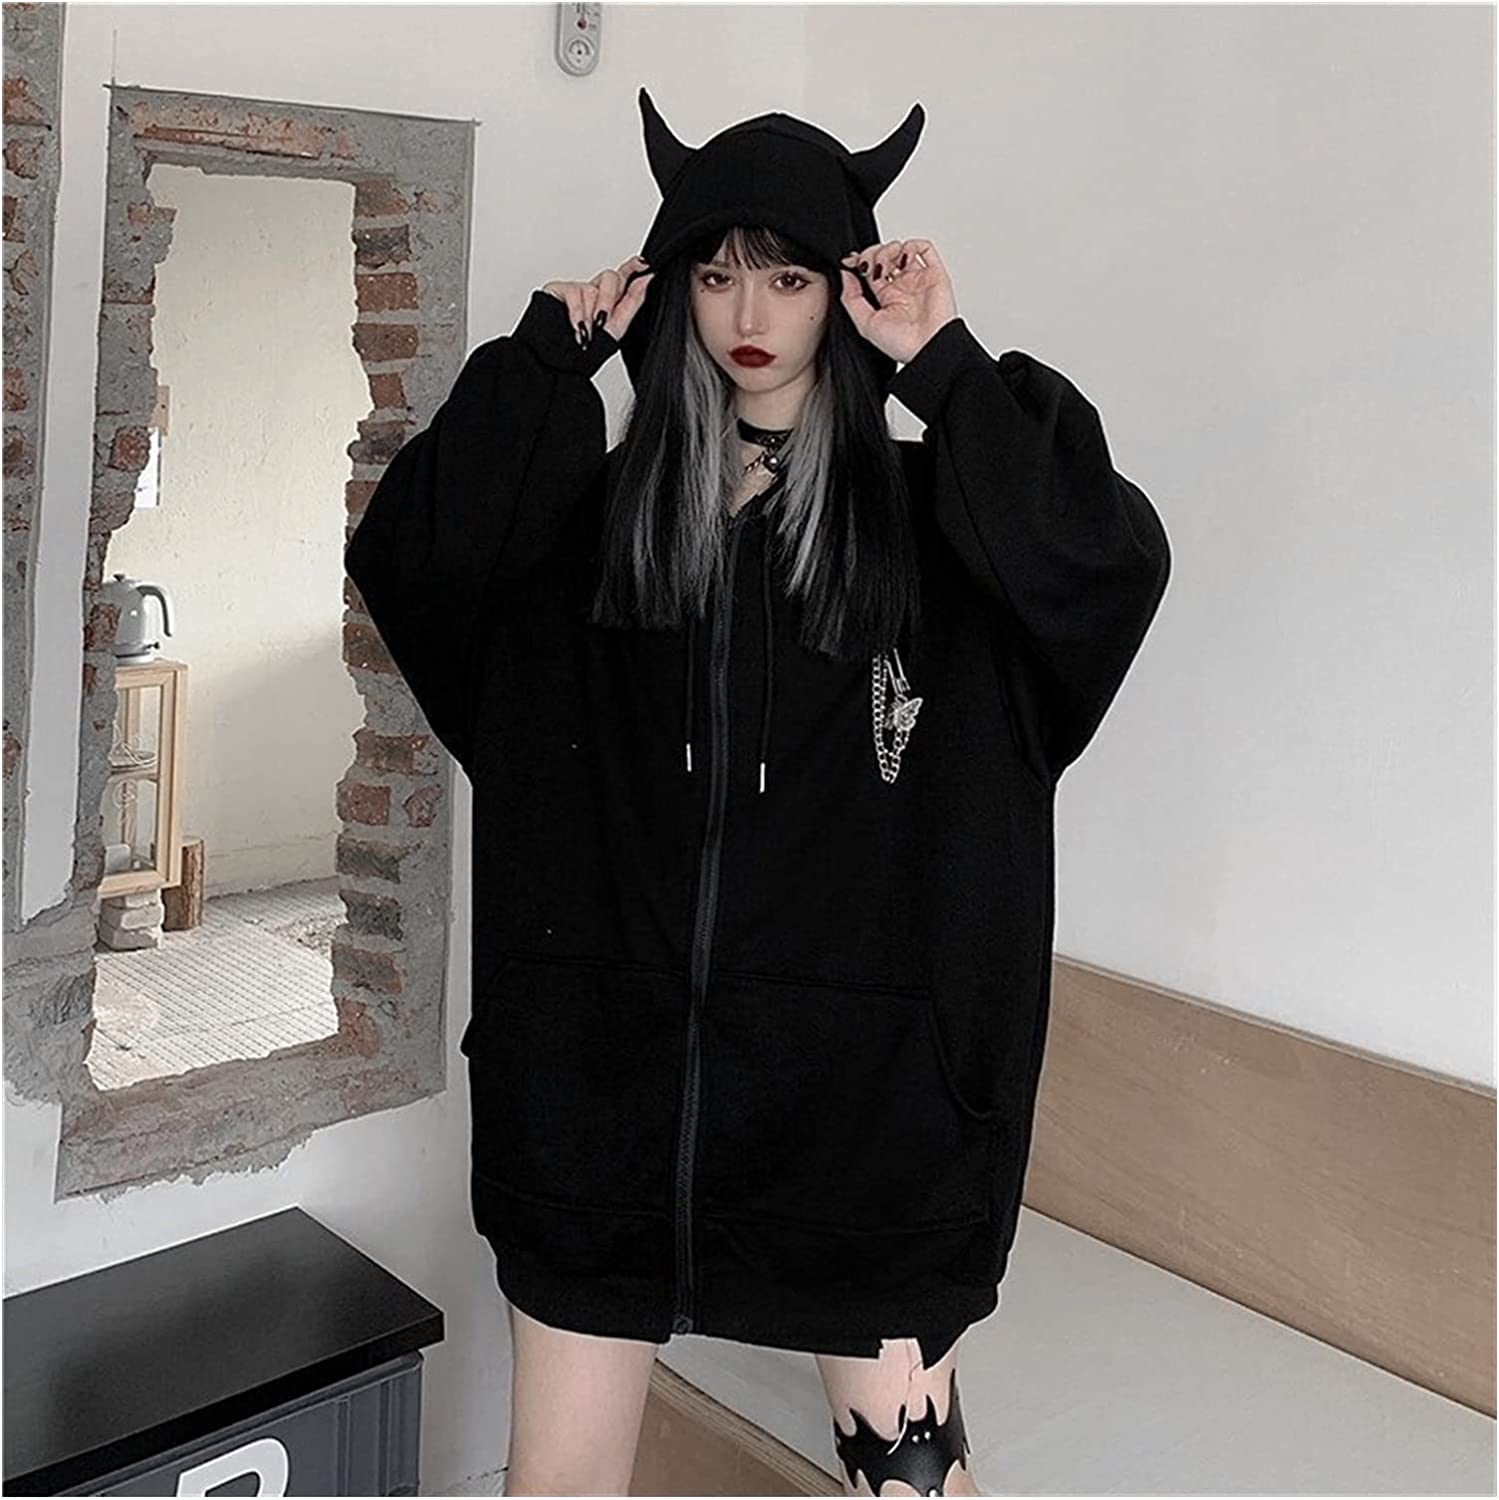 Yuncheng Women's Devil Horn versized Harajuku Hoodies with Butterfly Brooch Chain Long Sleeve Sweatshirt Pullover Tops (Color : Black, Size : One Size)